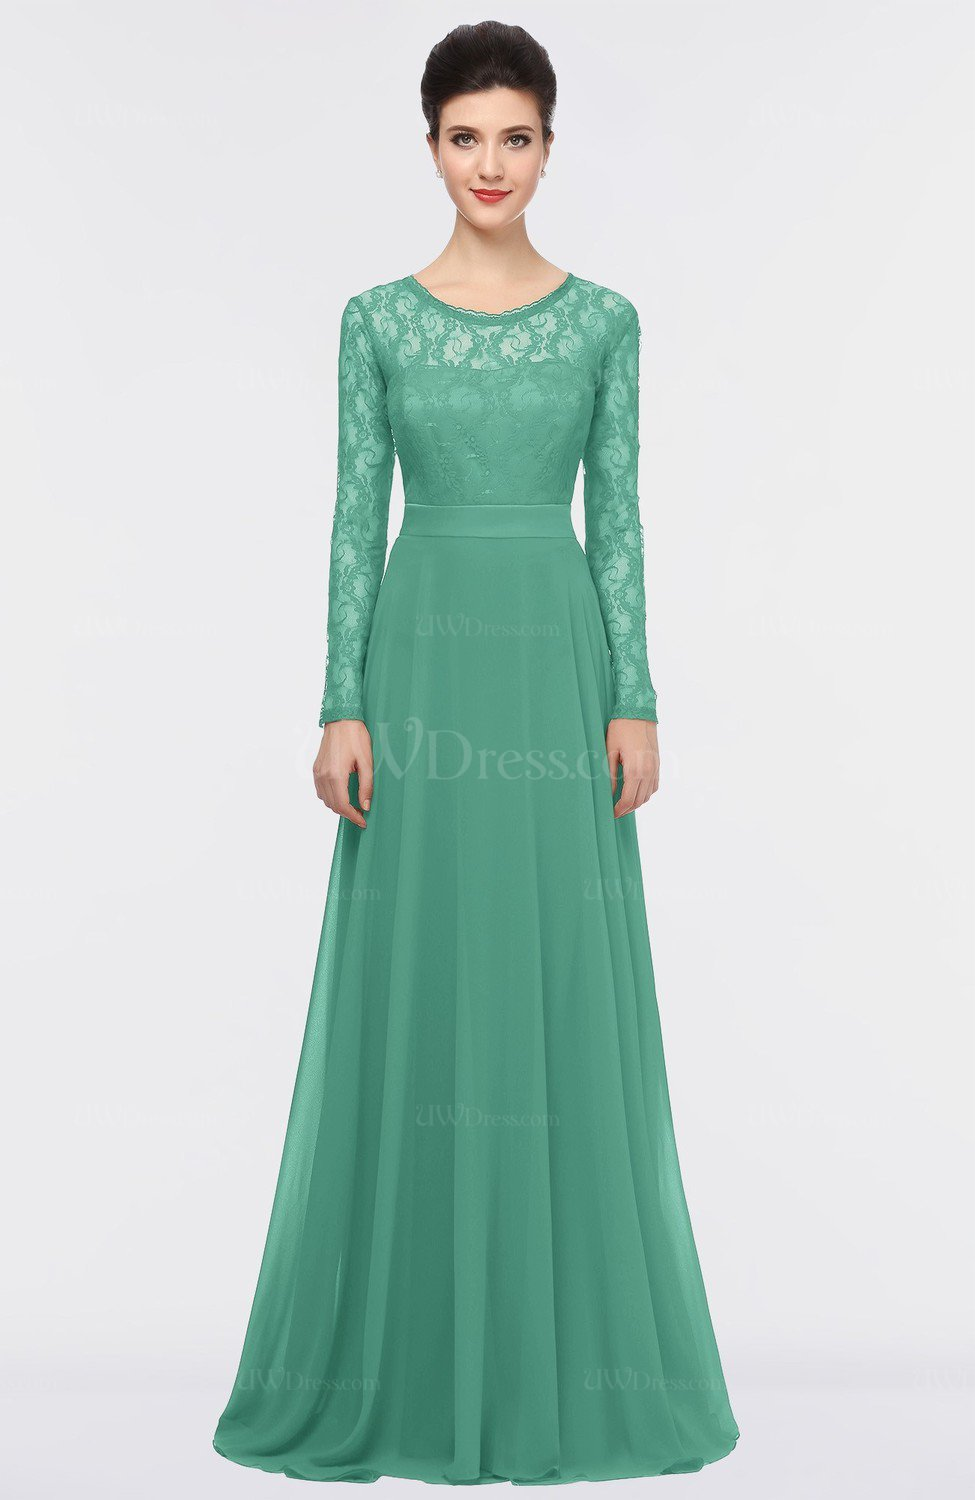 Beryl Green Romantic A-line Scoop Long Sleeve Floor Length Lace ...